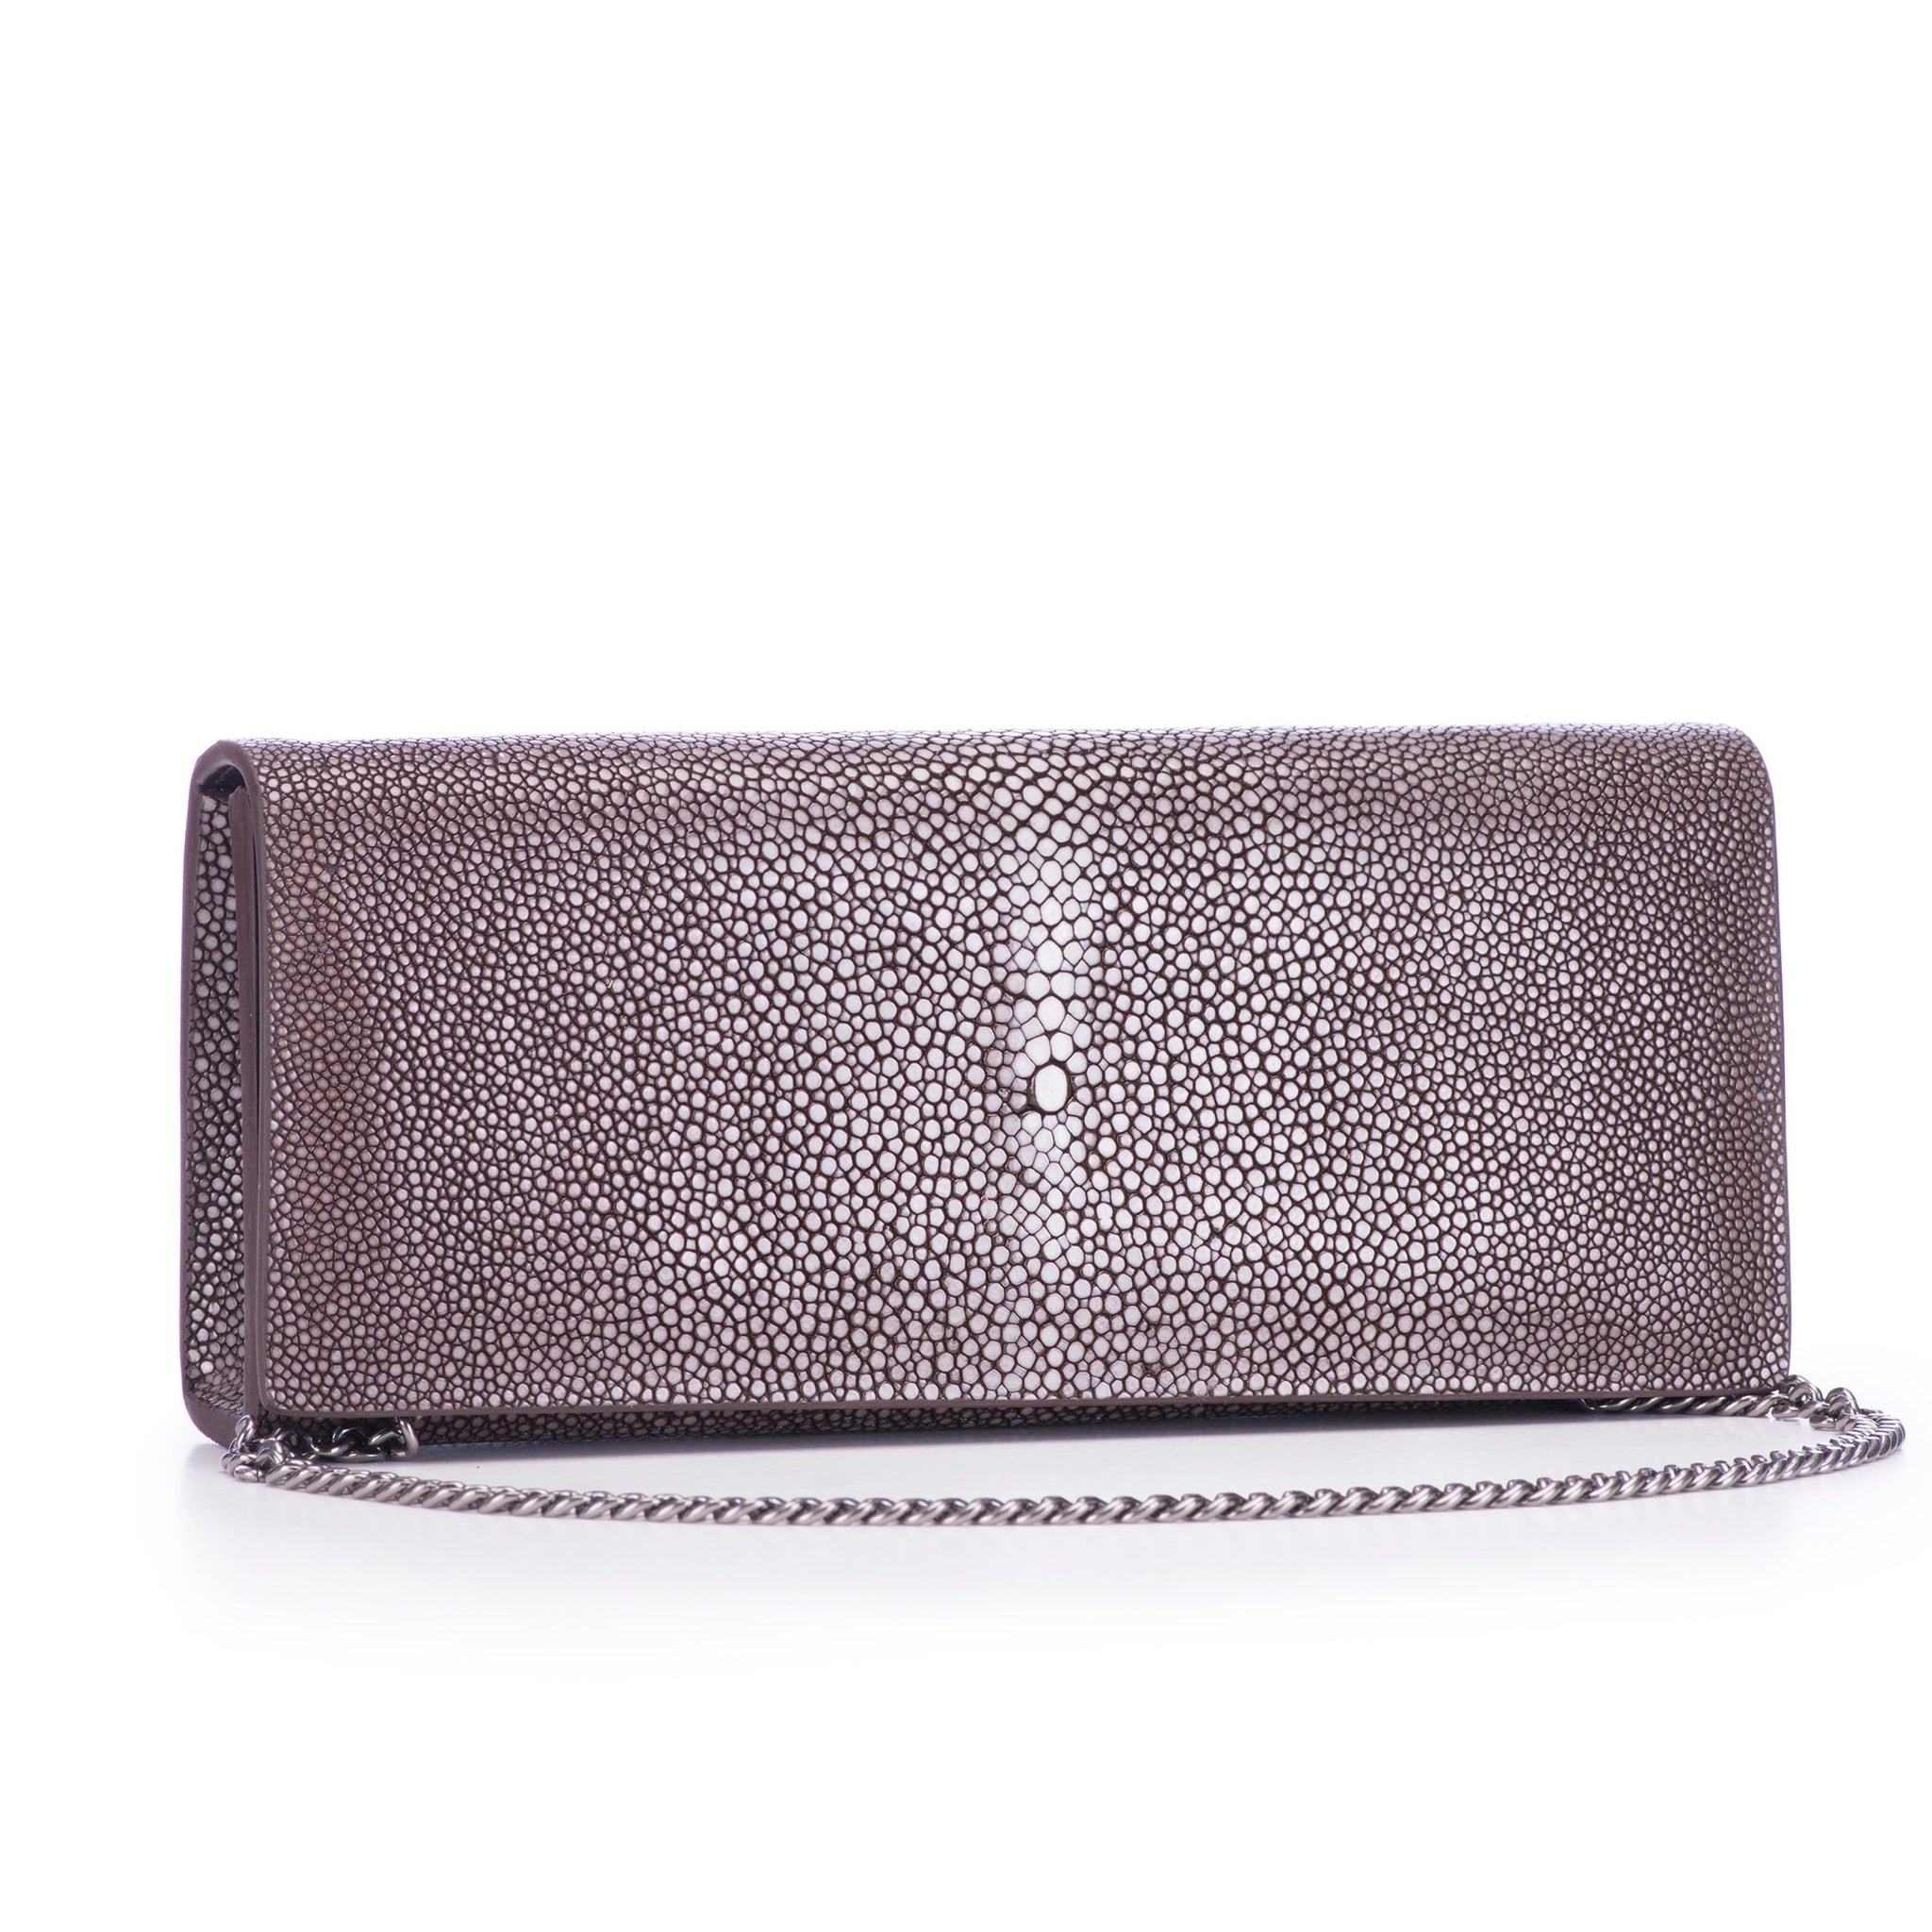 Coffee Shagreen Clutch Bag Front View With Chain Cleo - Vivo Direct